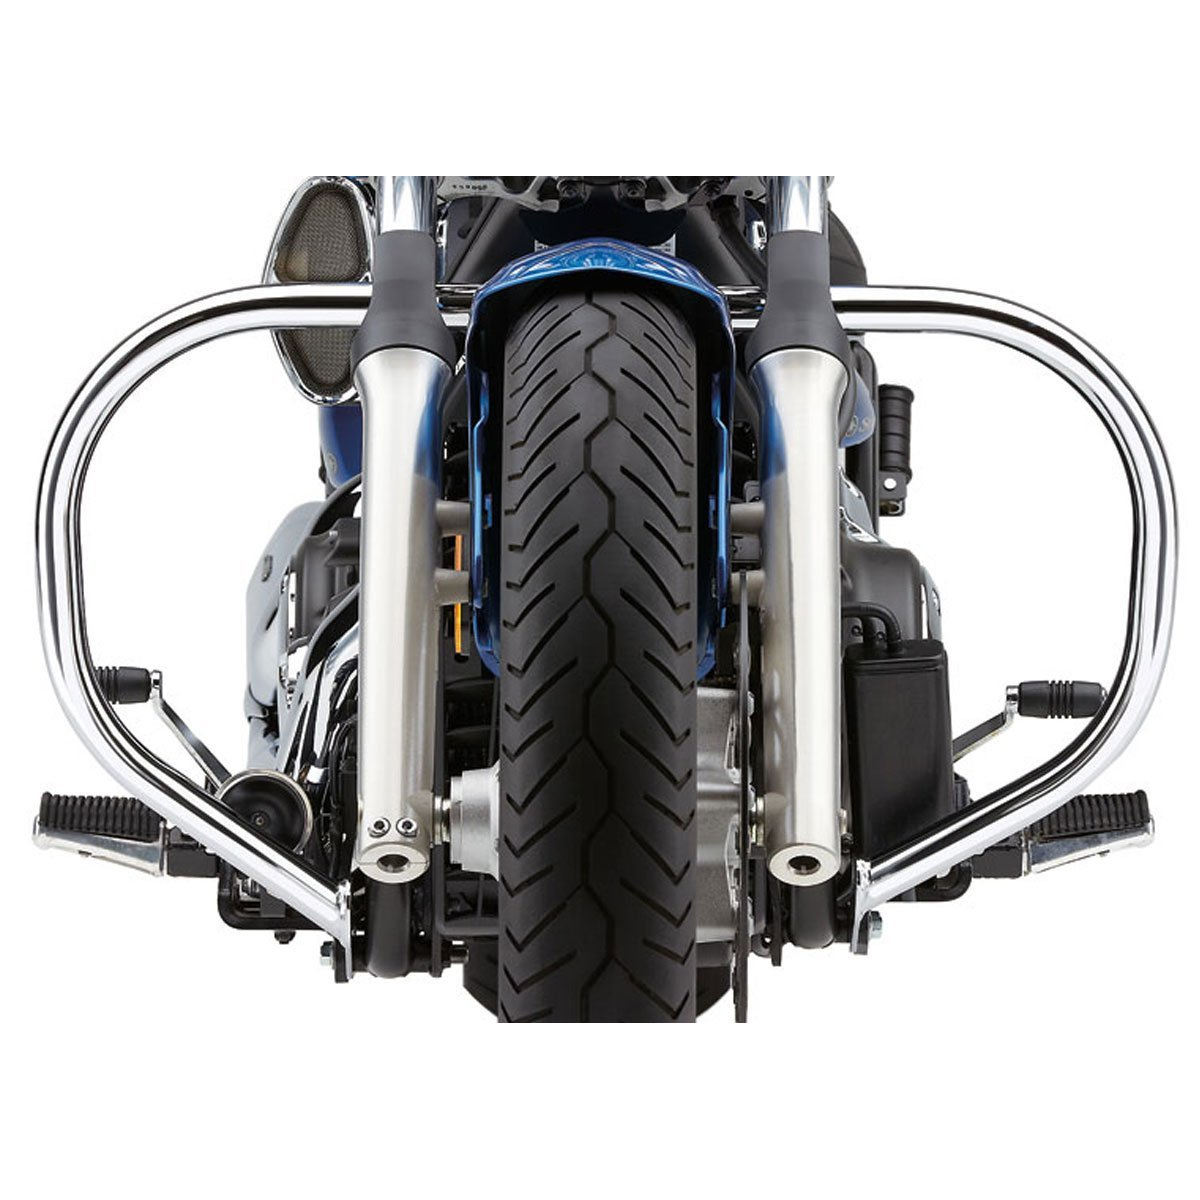 Get it delivered to your door - COBRA Freeway Bars for 2011-2012 Yamaha Stryker Models - 4800 (EGP)